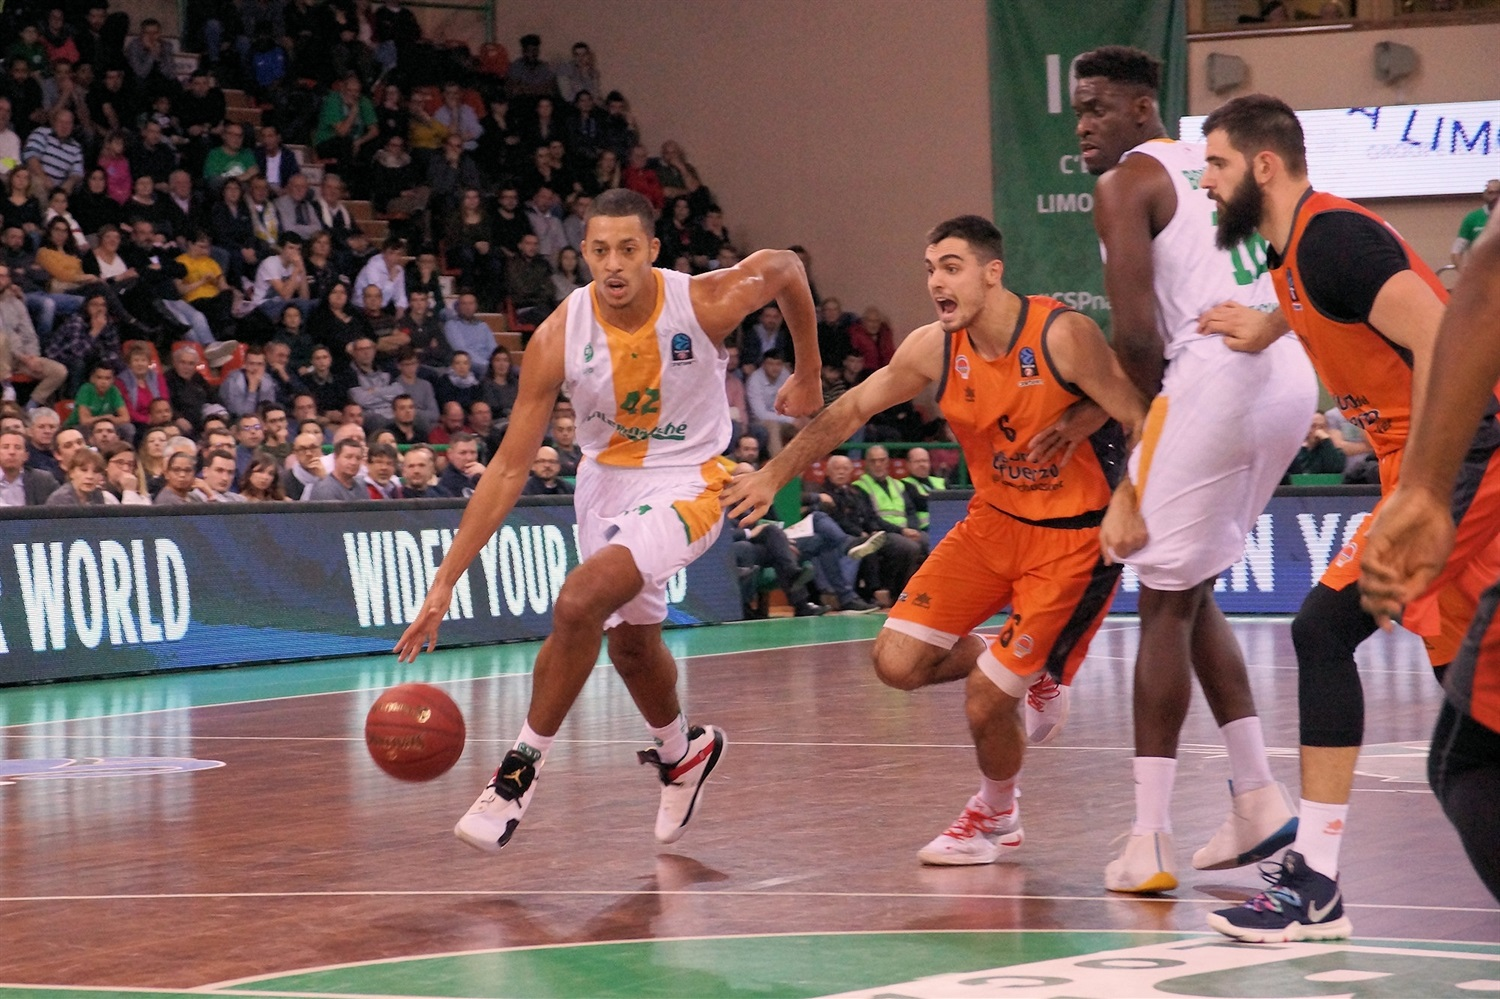 William Howard - Limoges CSP (photo Limoges) - EC18